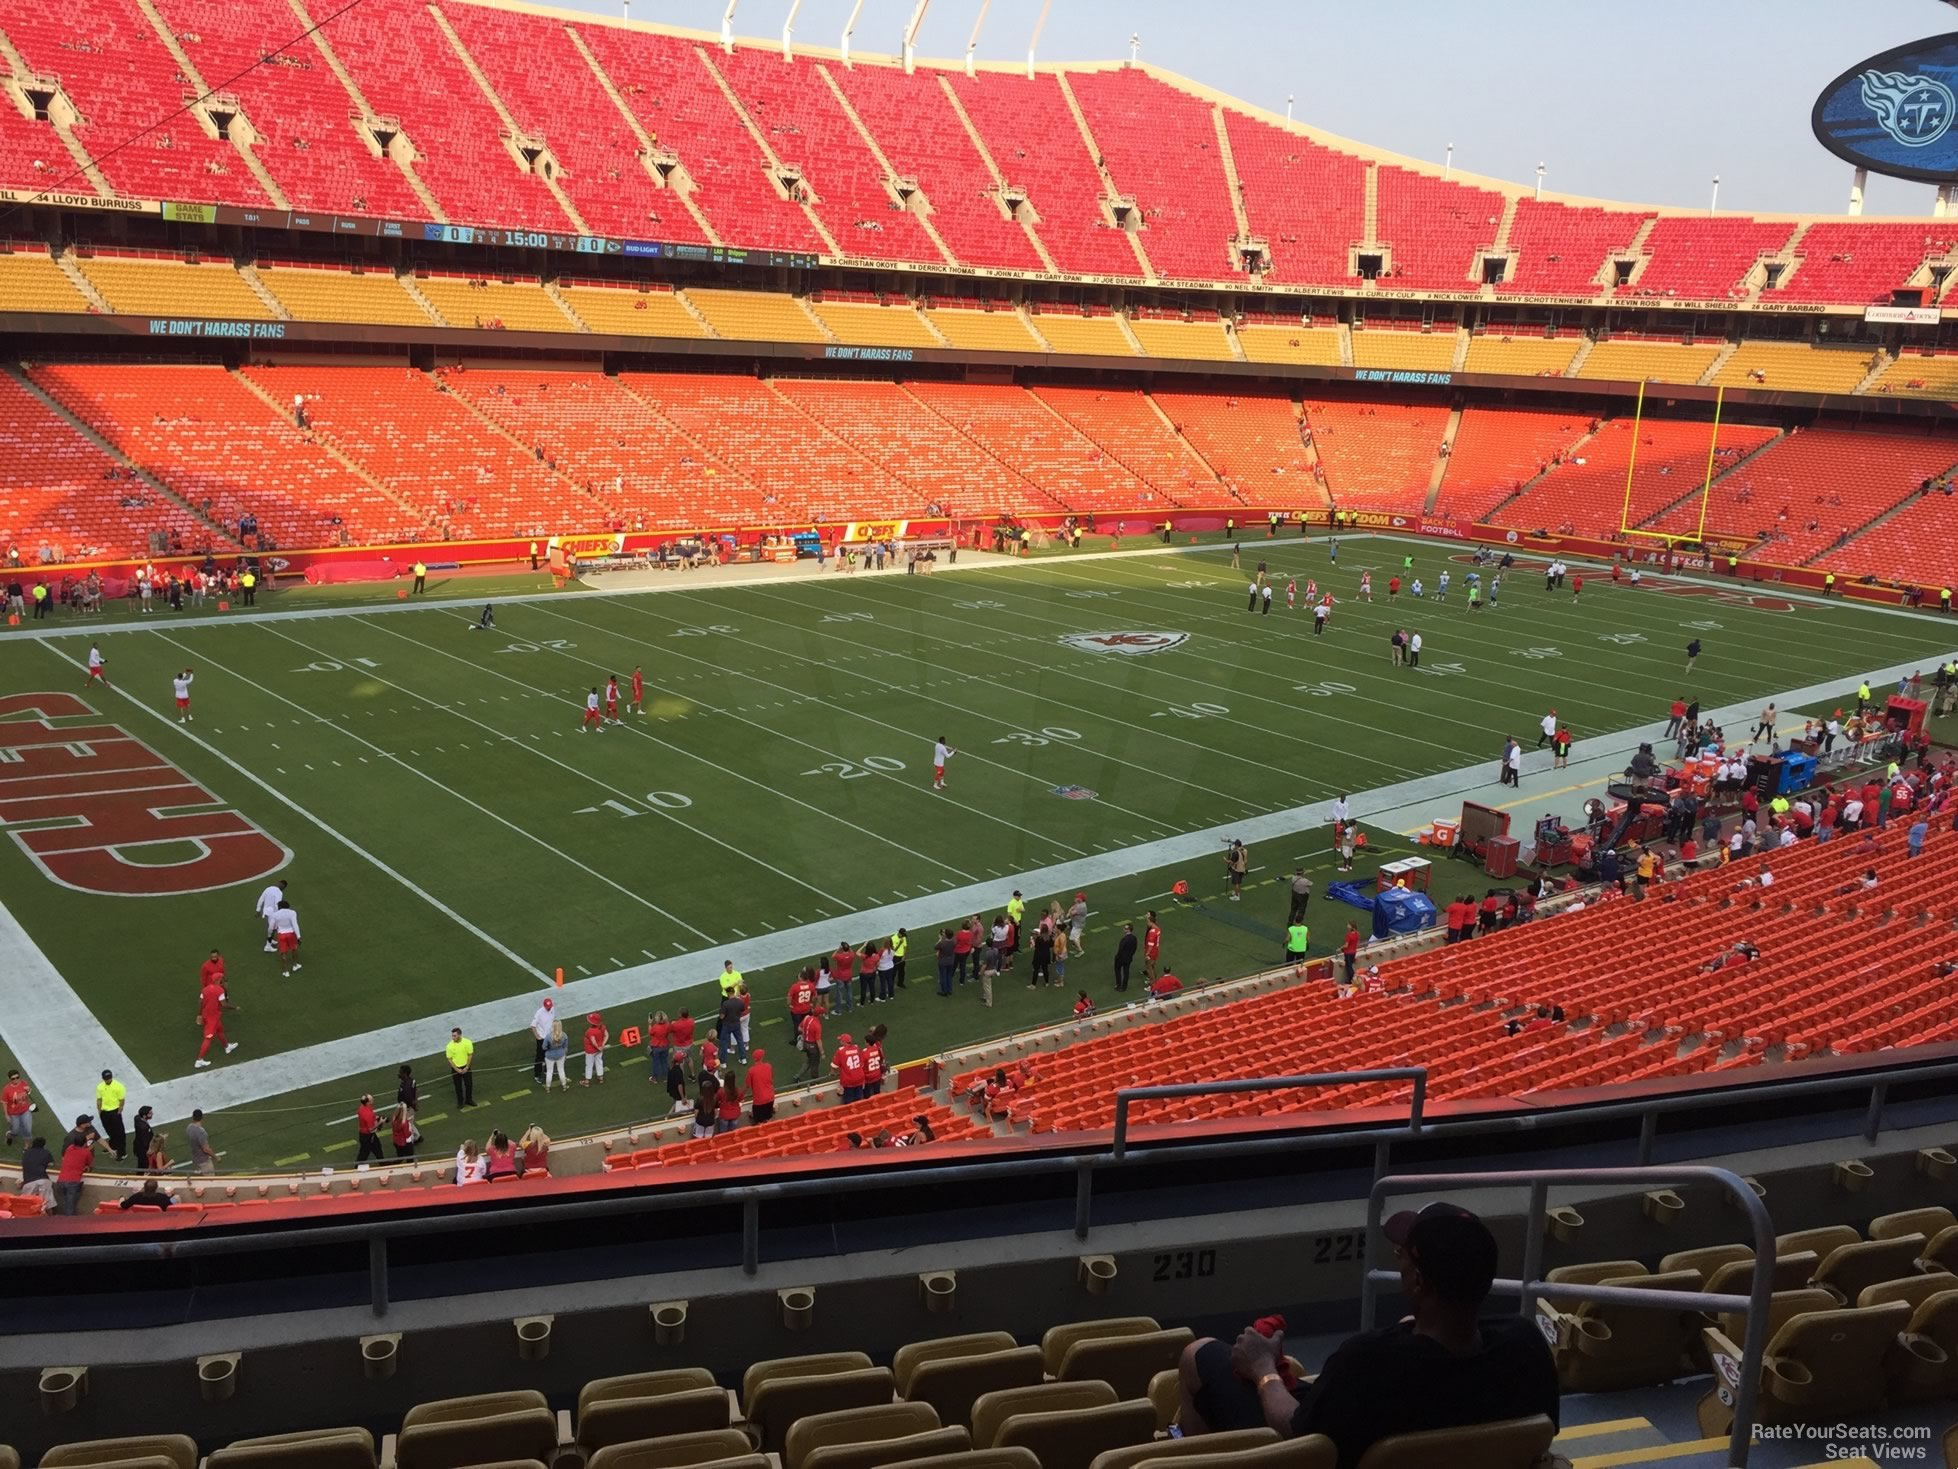 Seat View for Arrowhead Stadium Section 230, Row 7